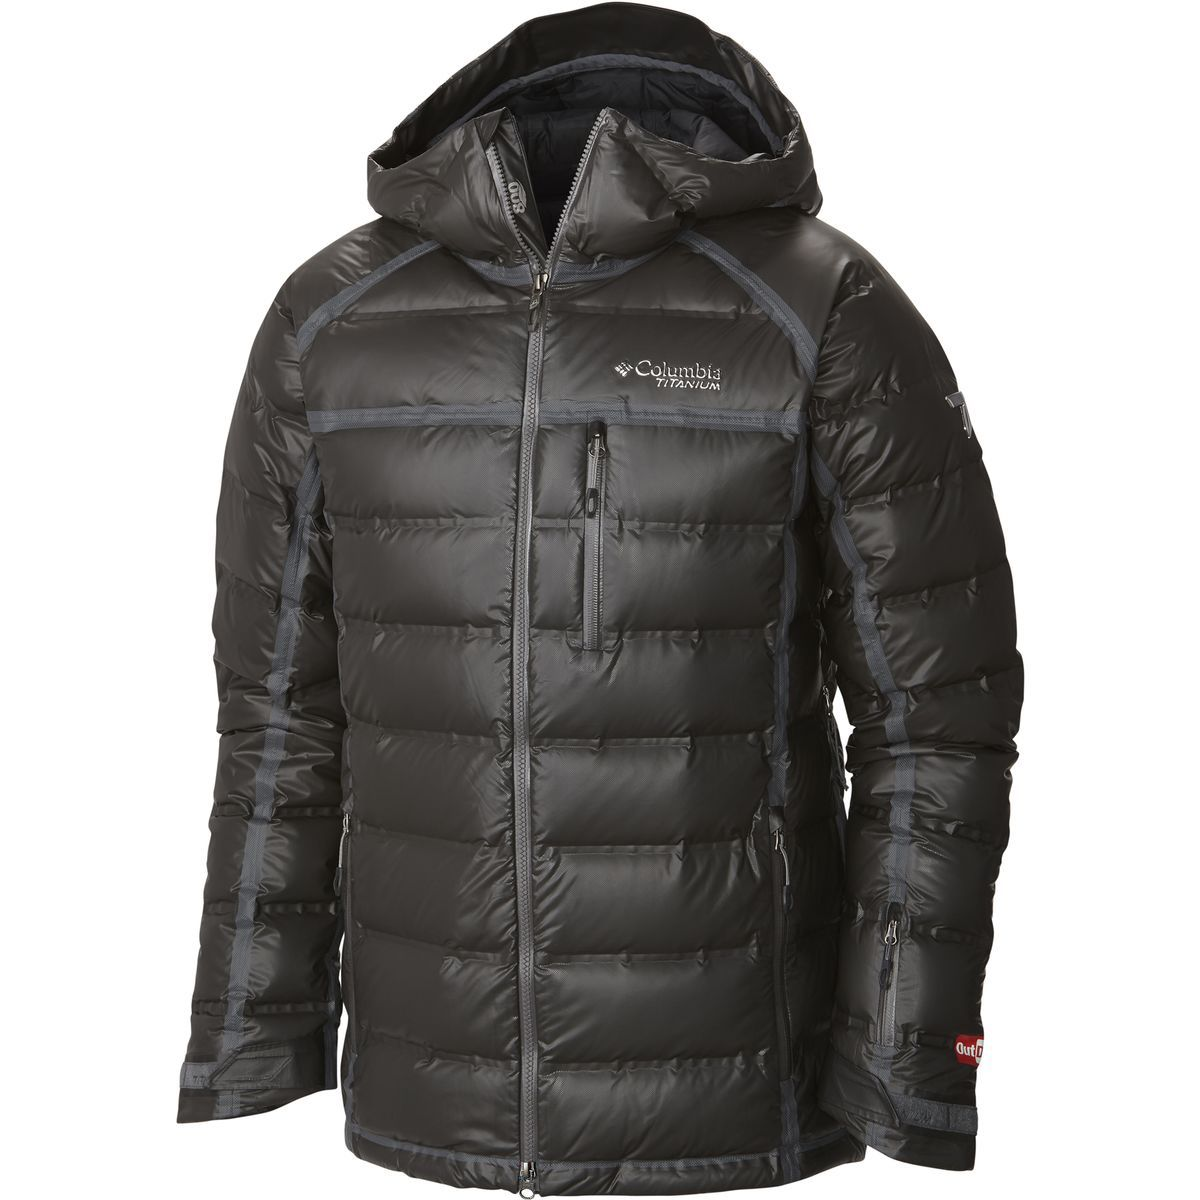 Columbia Outdry Ex Diamond Down Insulated Jacket - Men